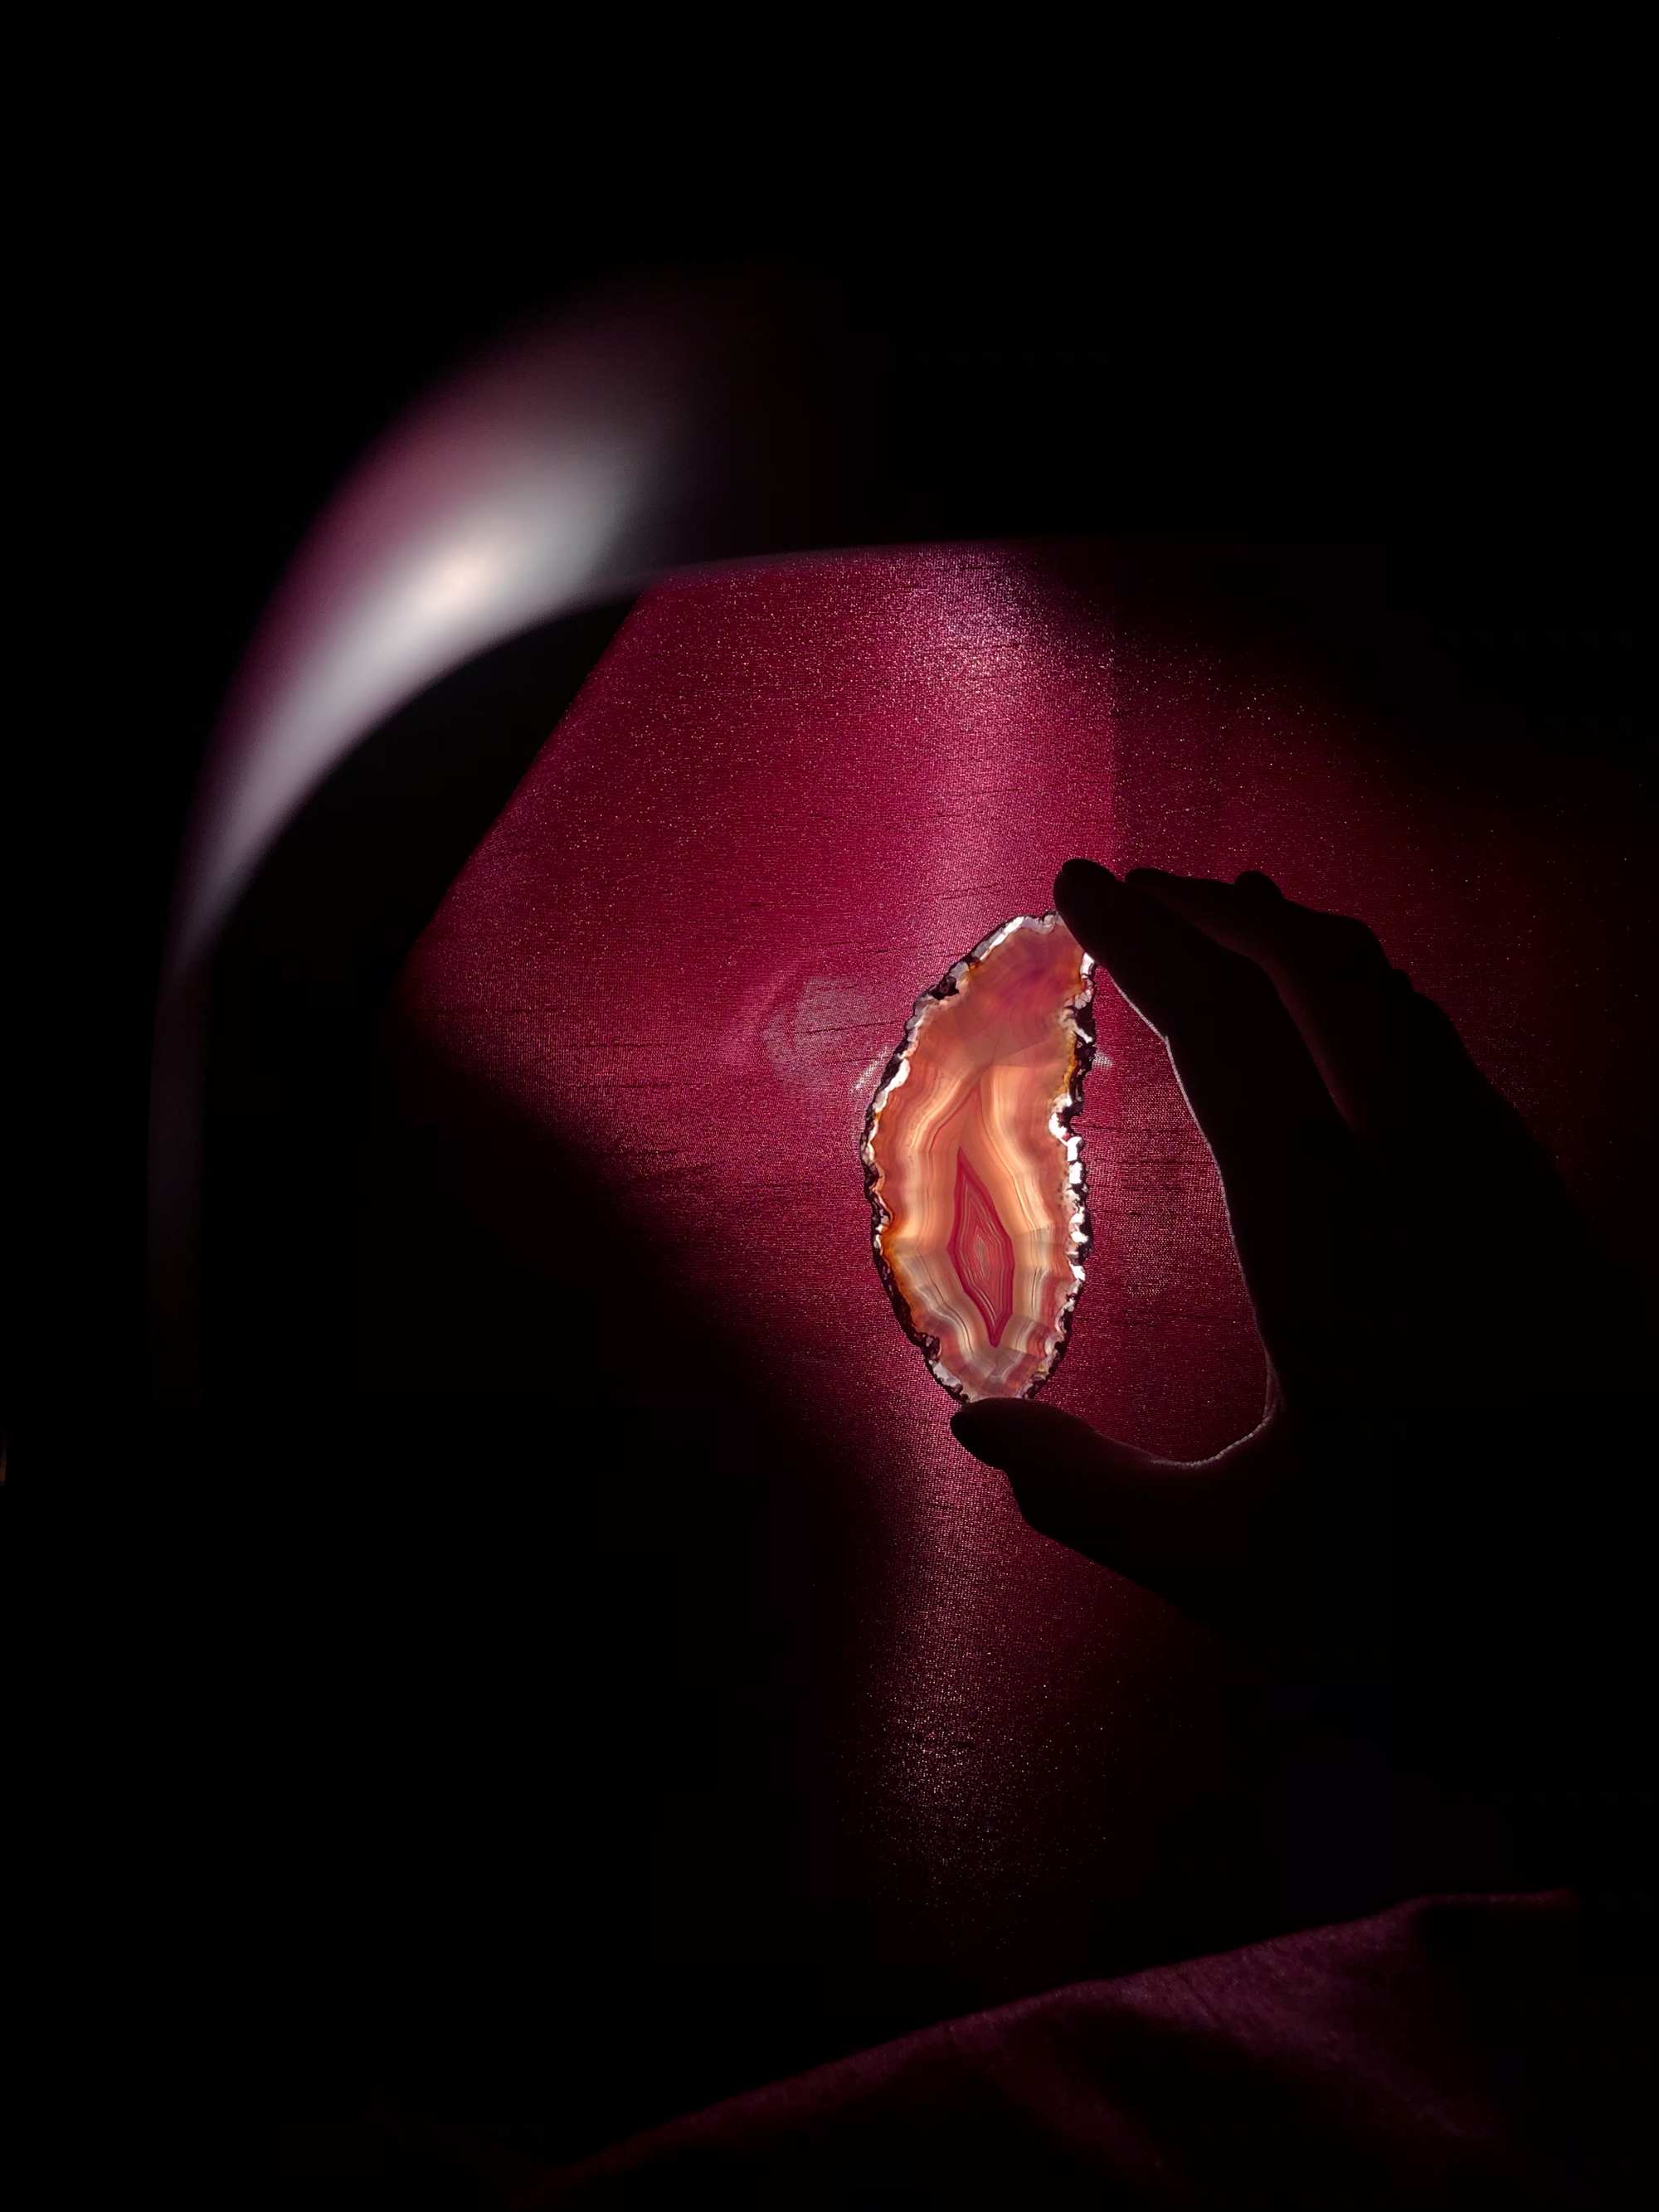 A slice of a crystal being held up to the light